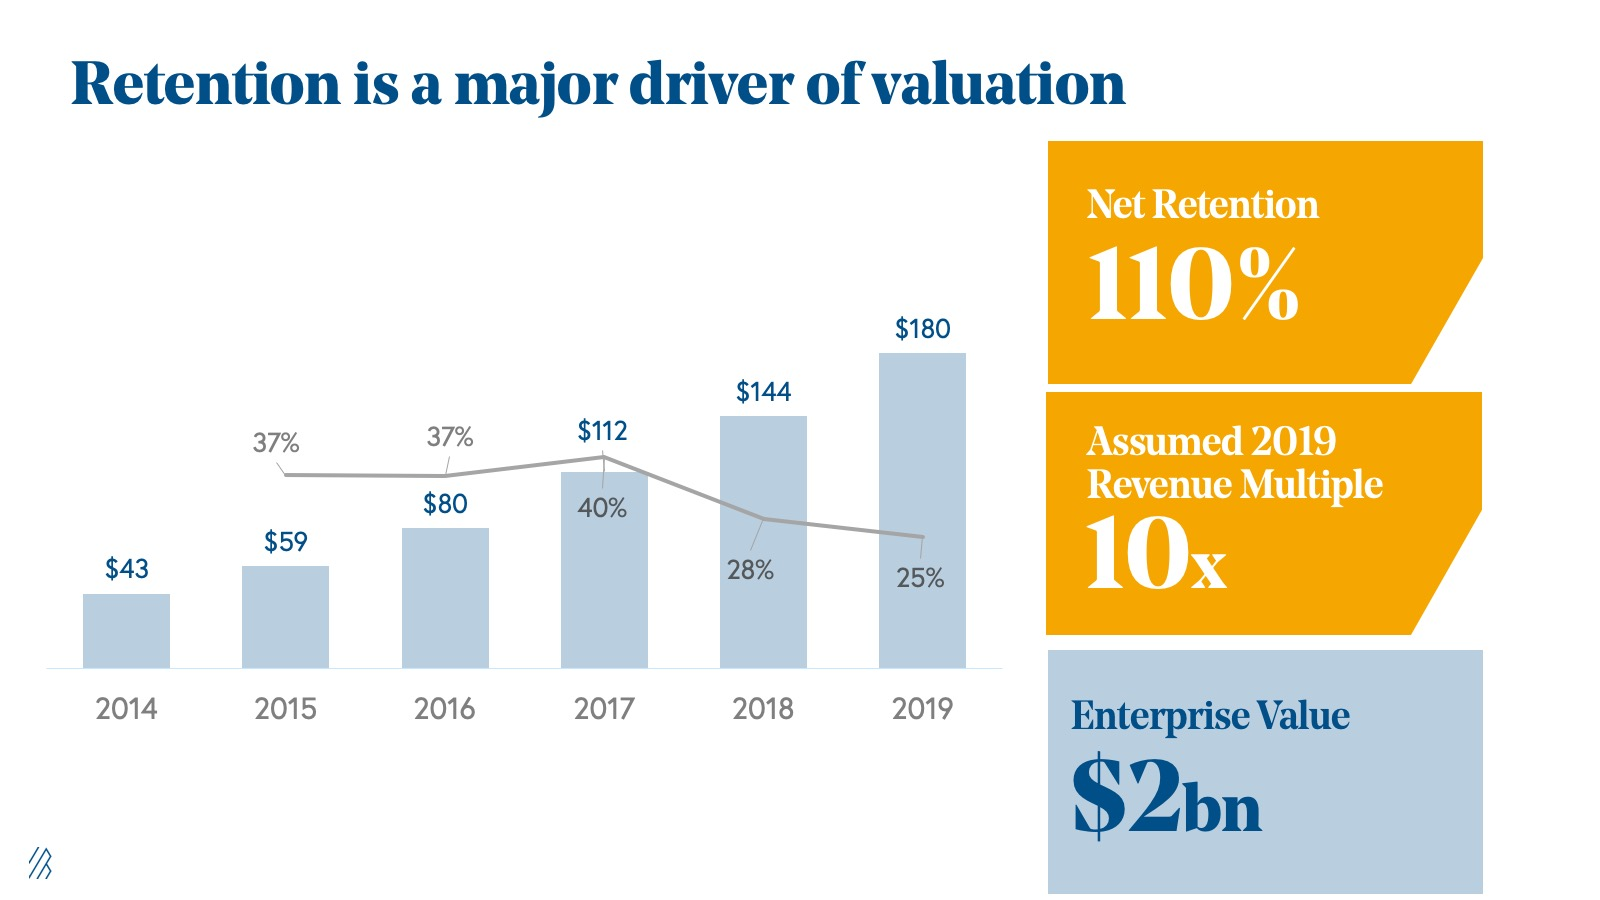 Retention is a major driver of valuation.